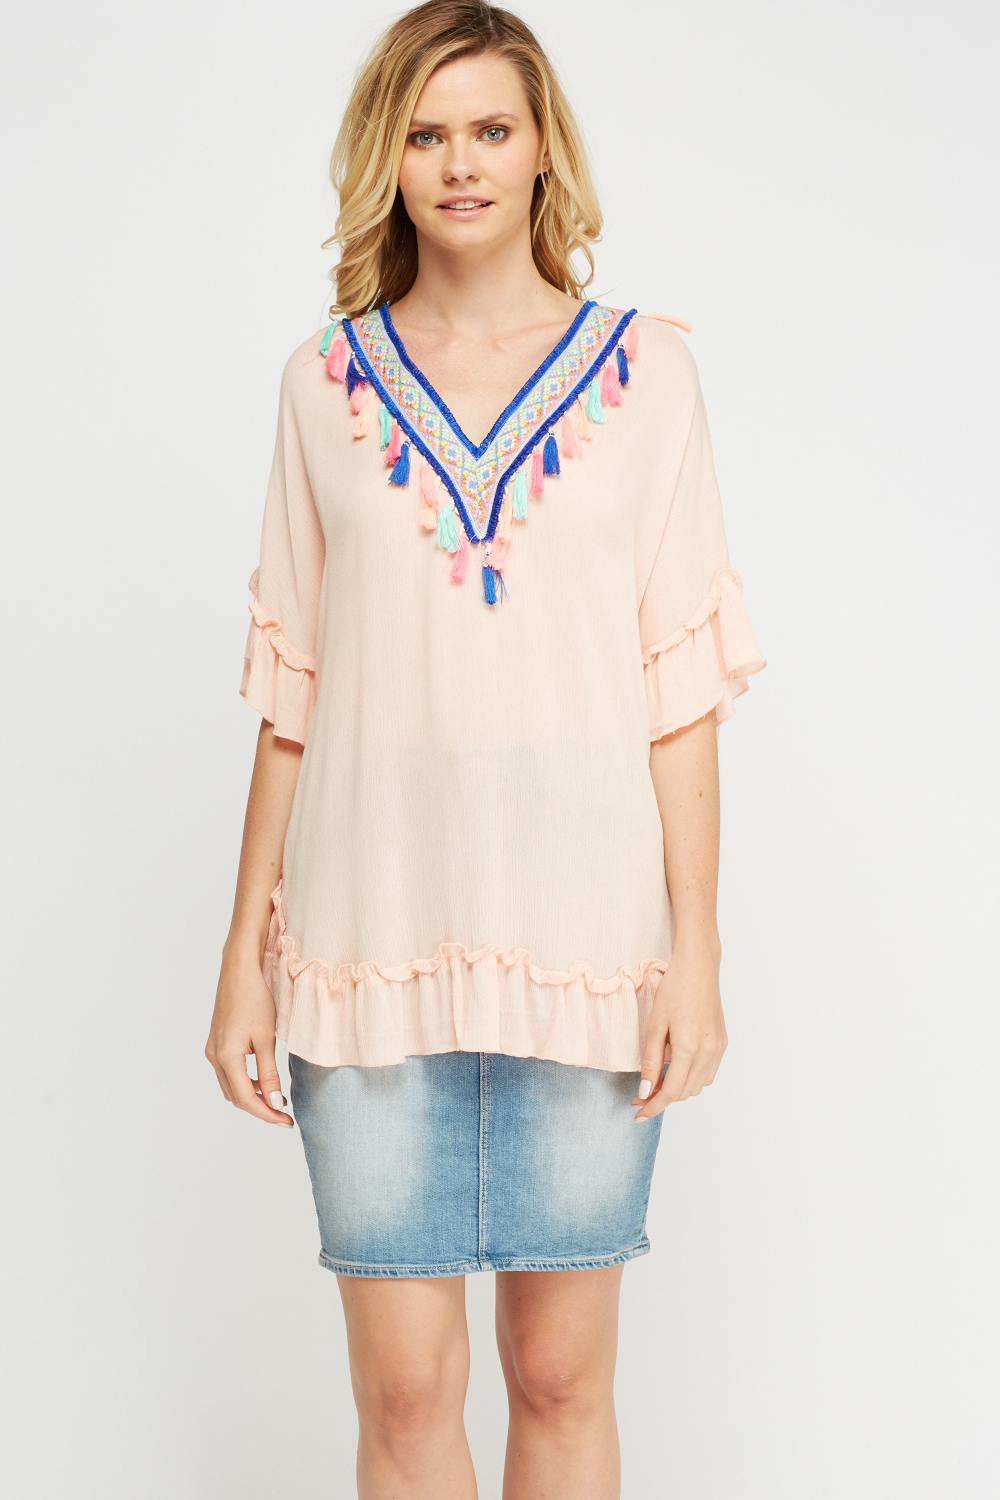 074934ef1420e Embroidered Tassel Cover Up Top - Just £2